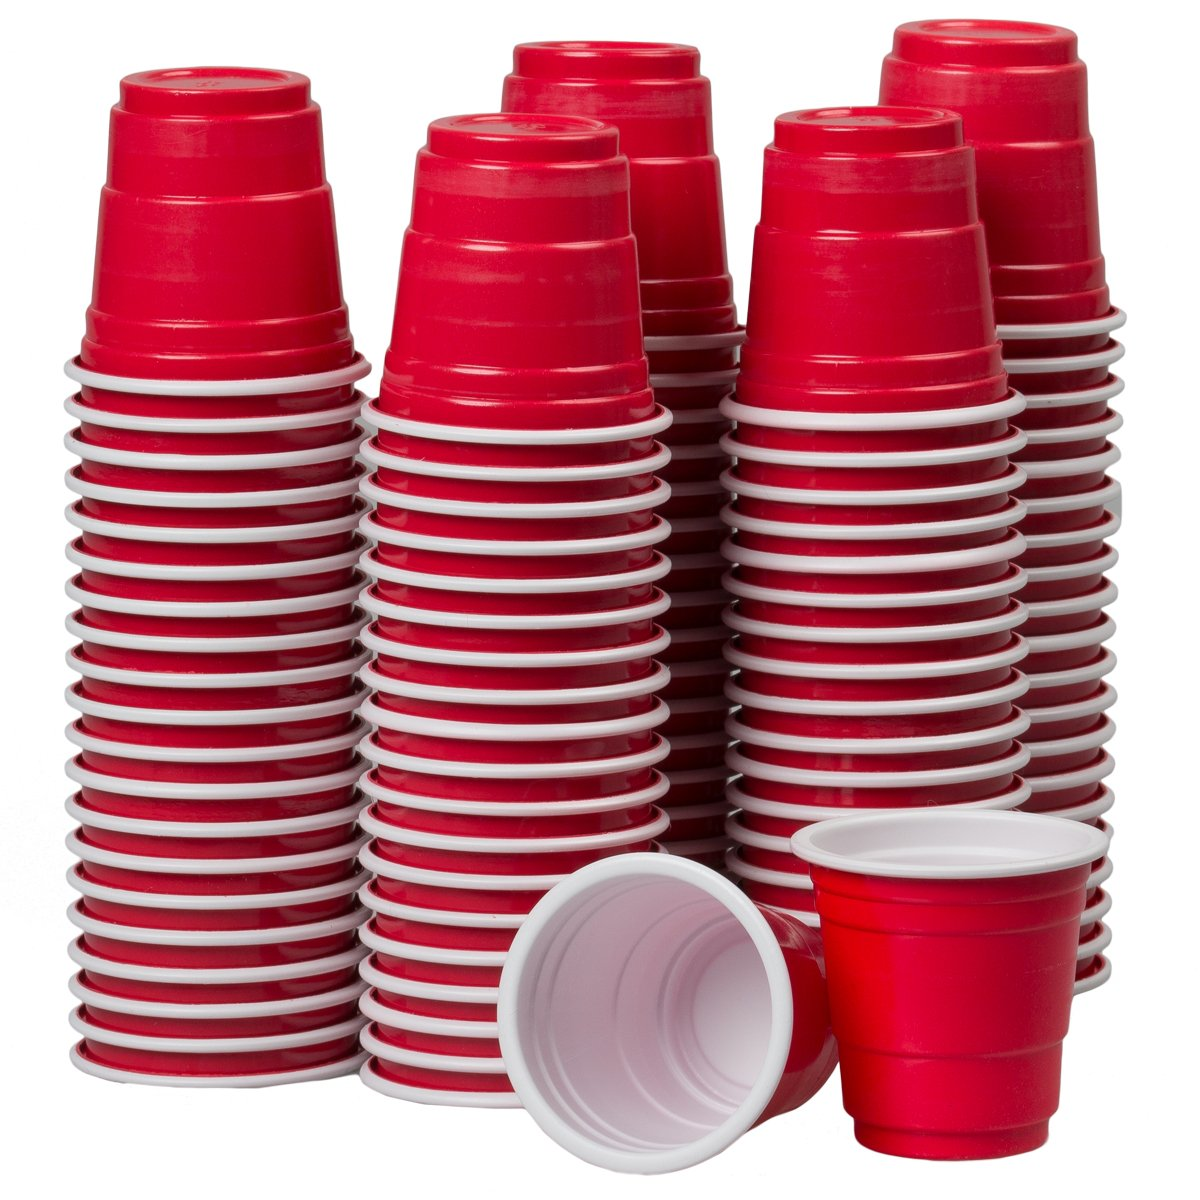 120ct Mini Red Cups 2oz Plastic Disposable Shot Glasses Party Shooter Beer Pong Jello by Global Décor